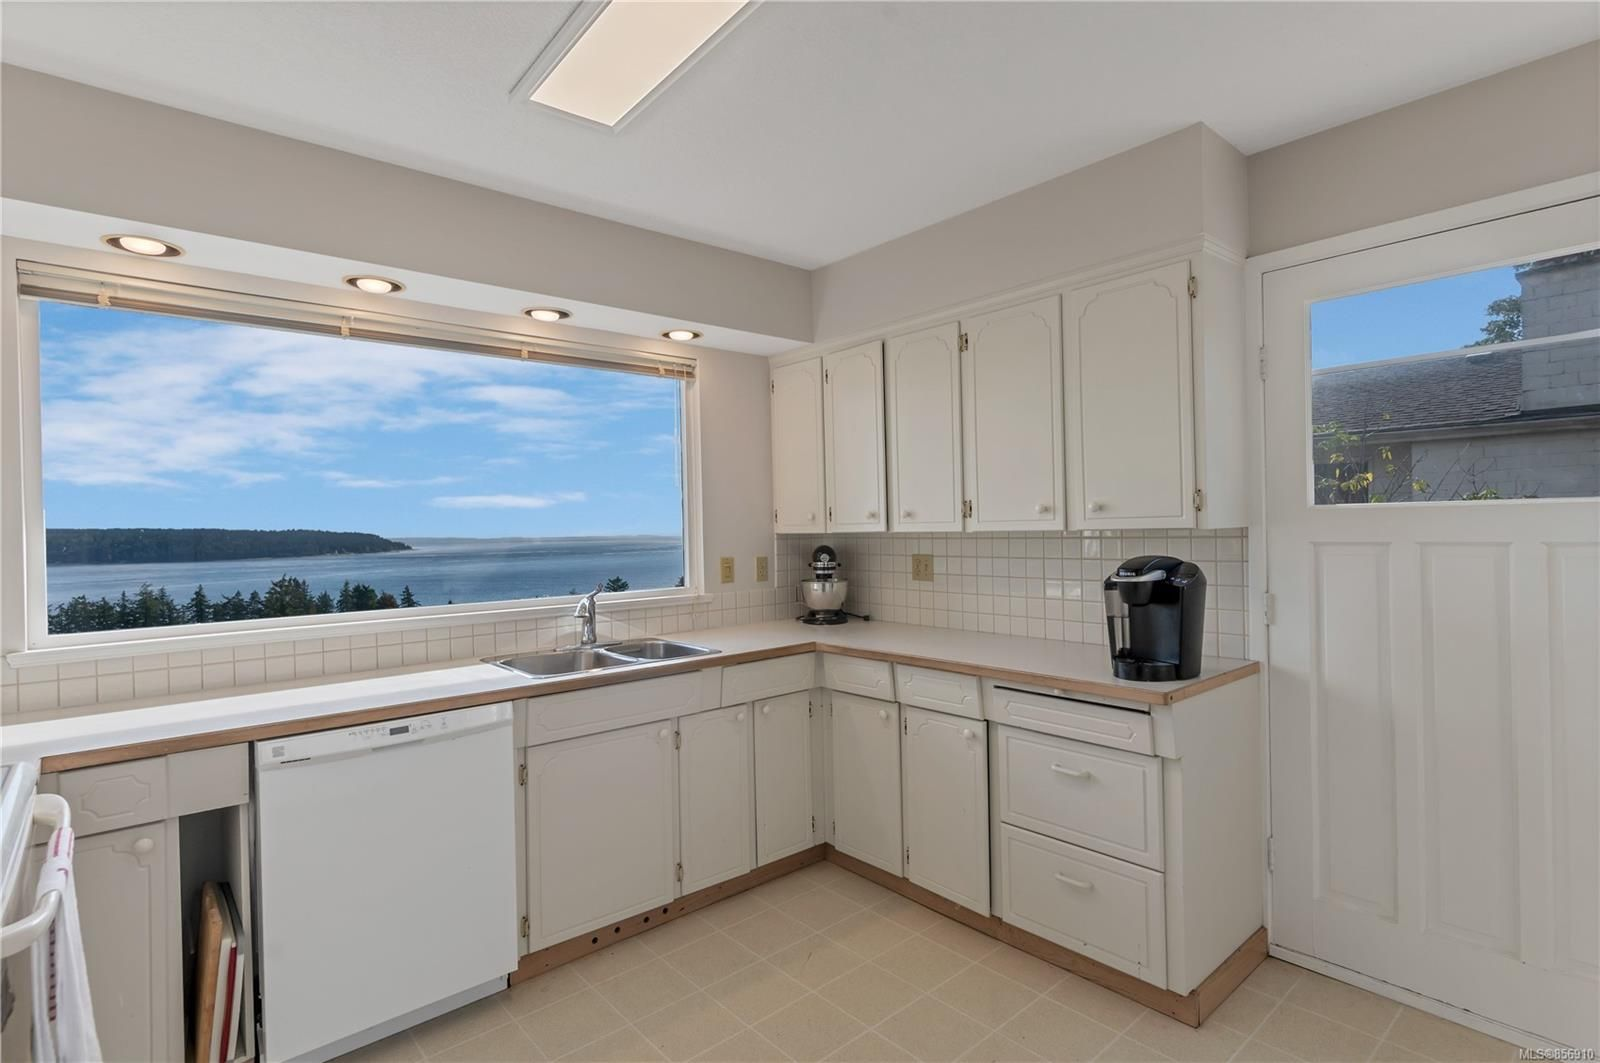 Photo 10: Photos: 215 S Alder St in : CR Campbell River Central House for sale (Campbell River)  : MLS®# 856910